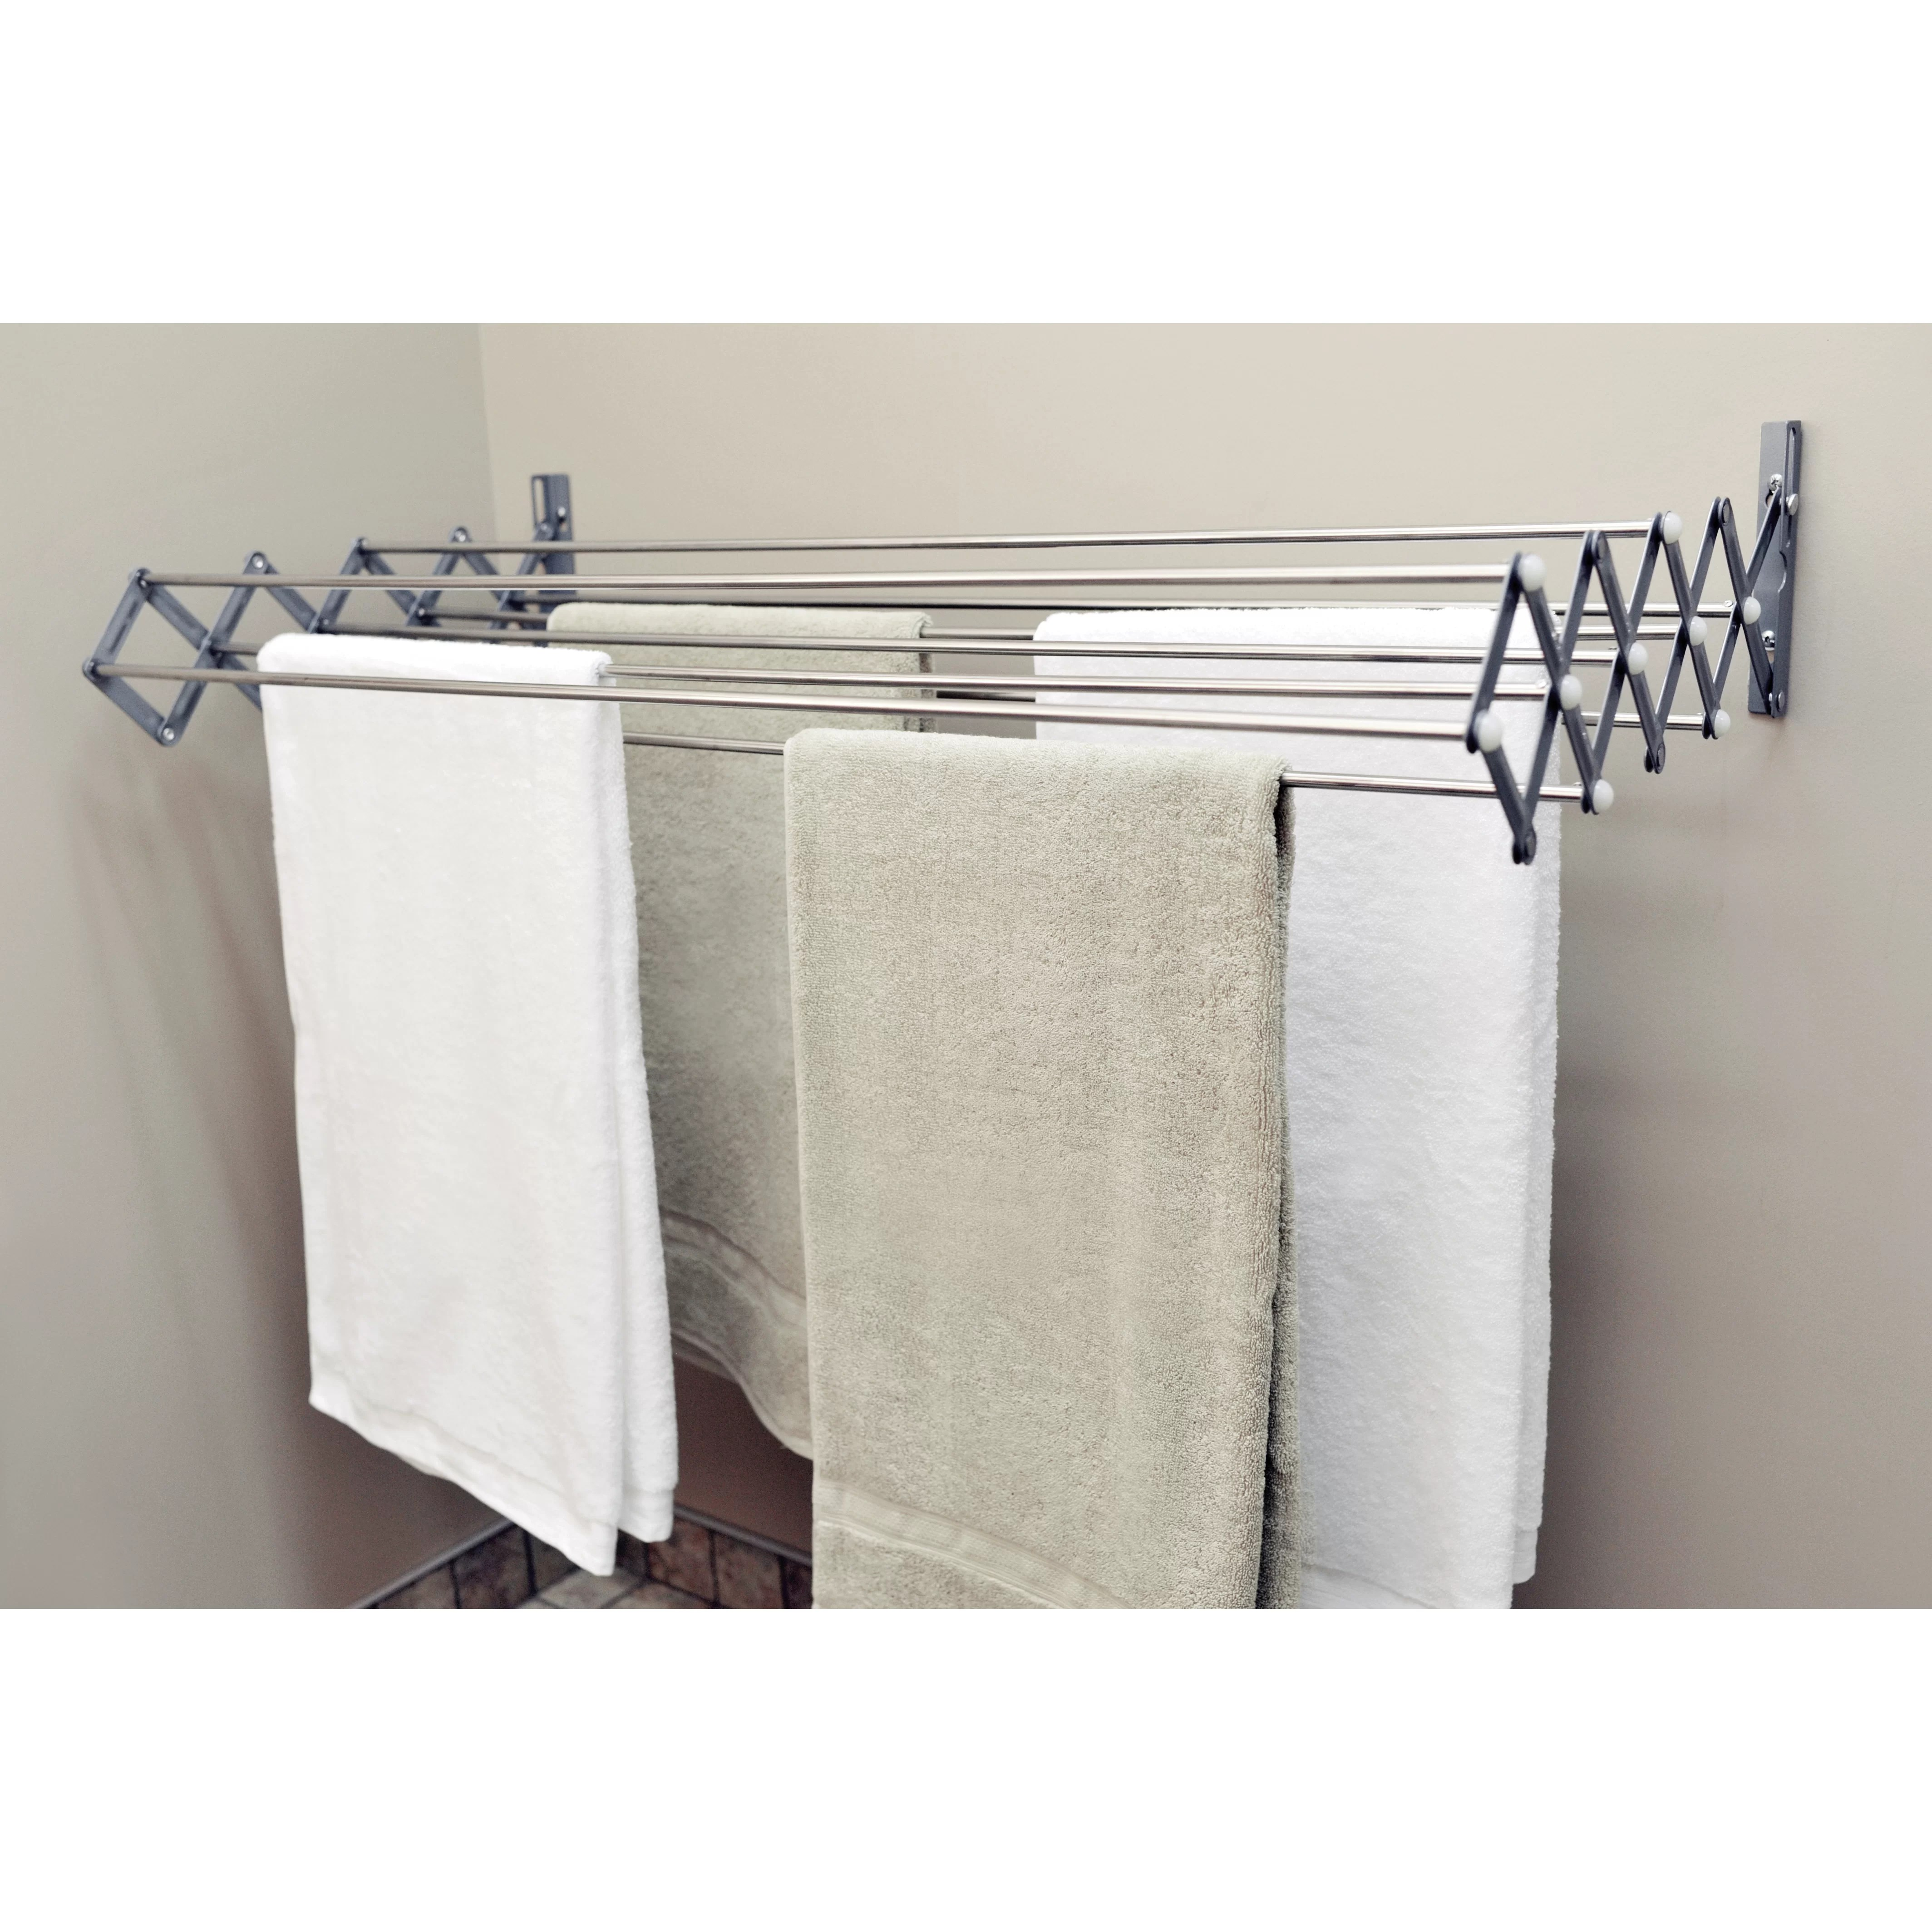 Small Clothes Dryer Xcentrik Smart Dryer Telescopic Clothes Drying Rack